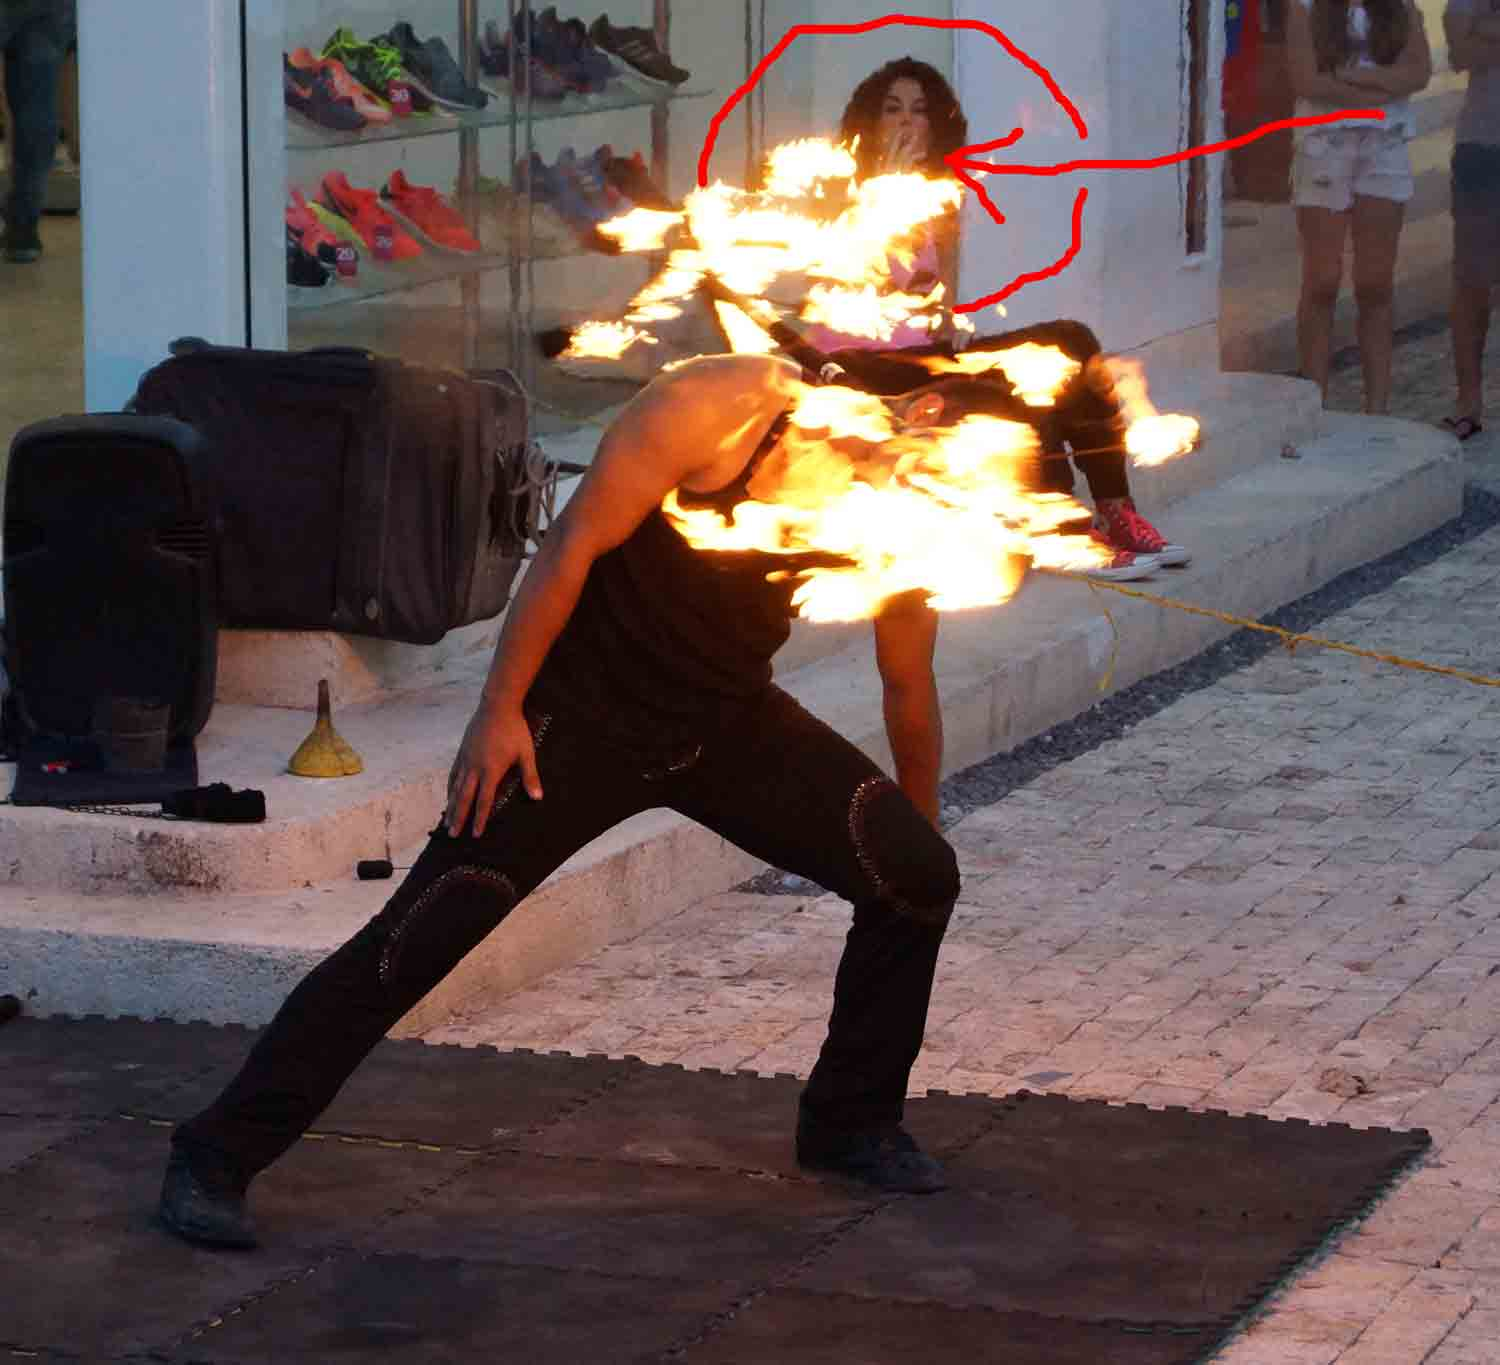 A woman lighting her cigarette on a fire dancer's burning pole.